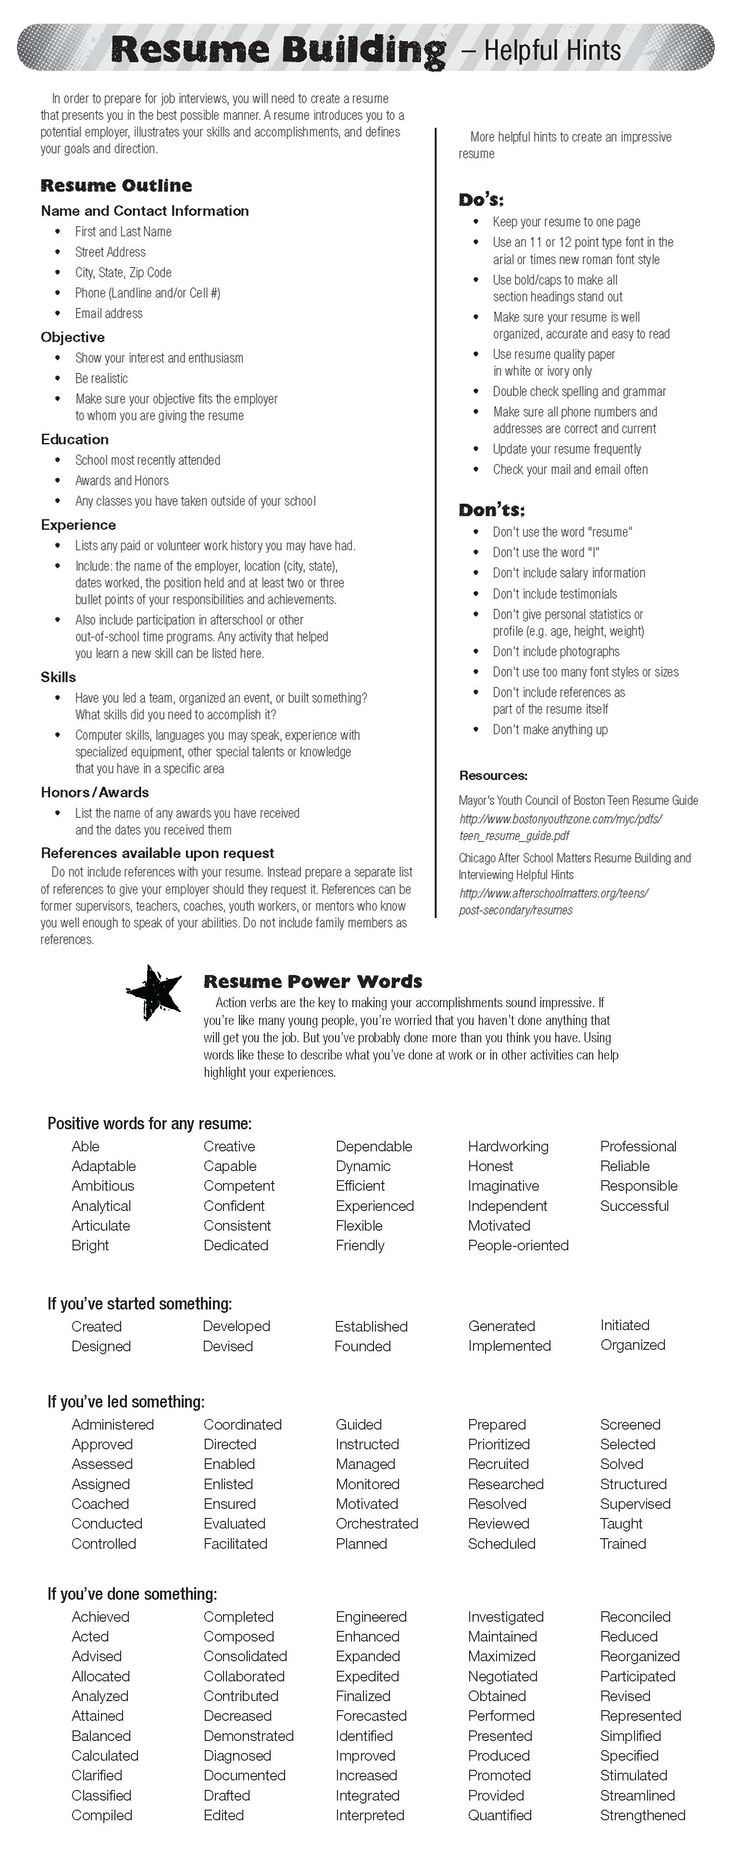 Picnictoimpeachus  Nice  Ideas About Resume On Pinterest  Cv Format Resume Cv And  With Lovable  Ideas About Resume On Pinterest  Cv Format Resume Cv And Resume Templates With Awesome Dishwasher Resume Sample Also What Not To Include In A Resume In Addition Resume Reference Page Example And House Manager Resume As Well As Grocery Clerk Resume Additionally Sample Resume For Office Assistant From Pinterestcom With Picnictoimpeachus  Lovable  Ideas About Resume On Pinterest  Cv Format Resume Cv And  With Awesome  Ideas About Resume On Pinterest  Cv Format Resume Cv And Resume Templates And Nice Dishwasher Resume Sample Also What Not To Include In A Resume In Addition Resume Reference Page Example From Pinterestcom